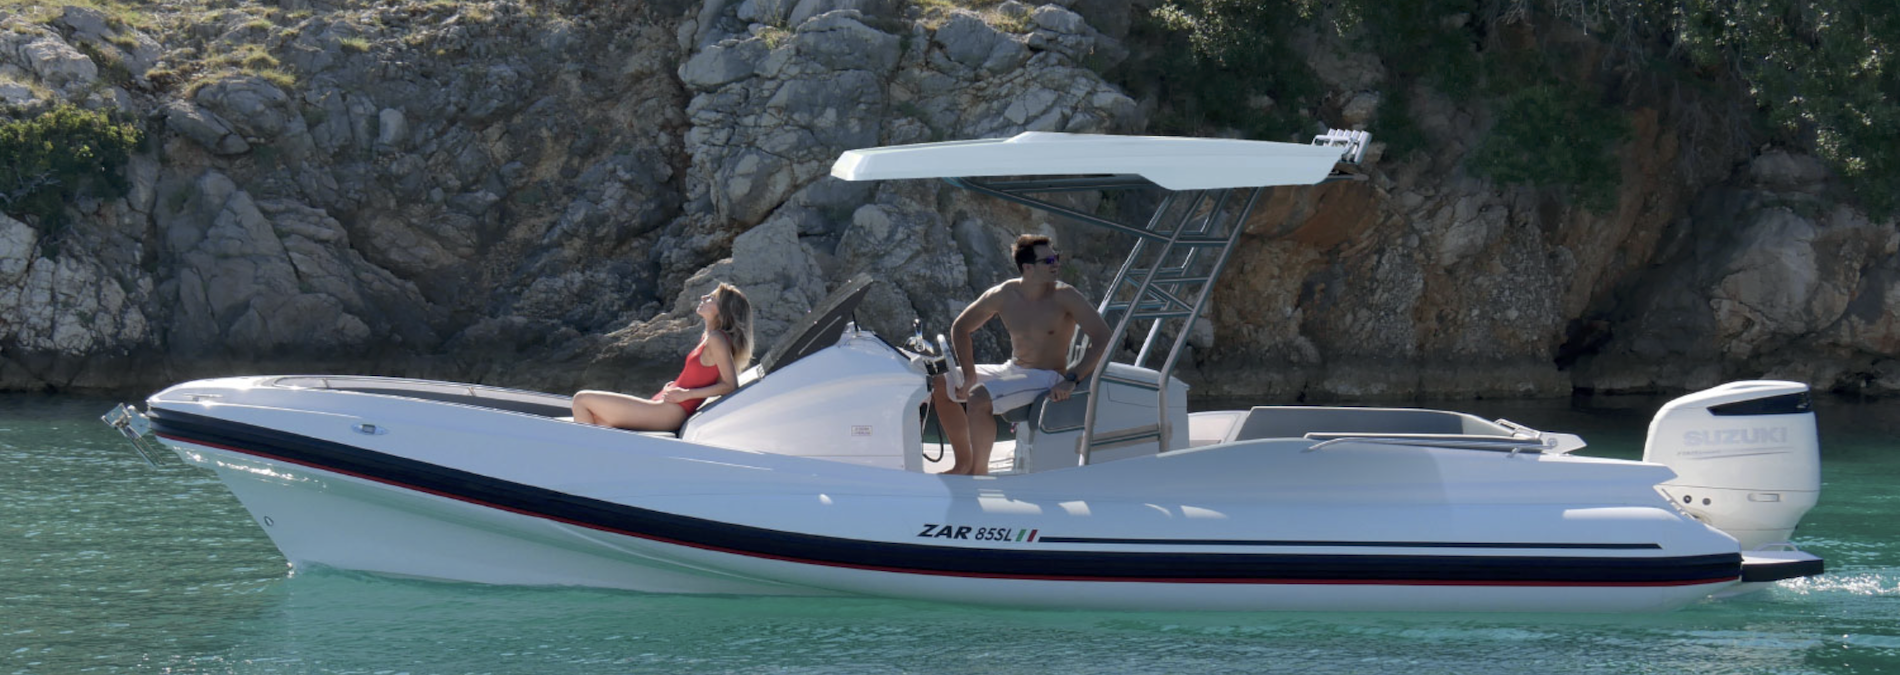 Amber Yachting: new Zar Formenti dealer for the Alpes Maritimes